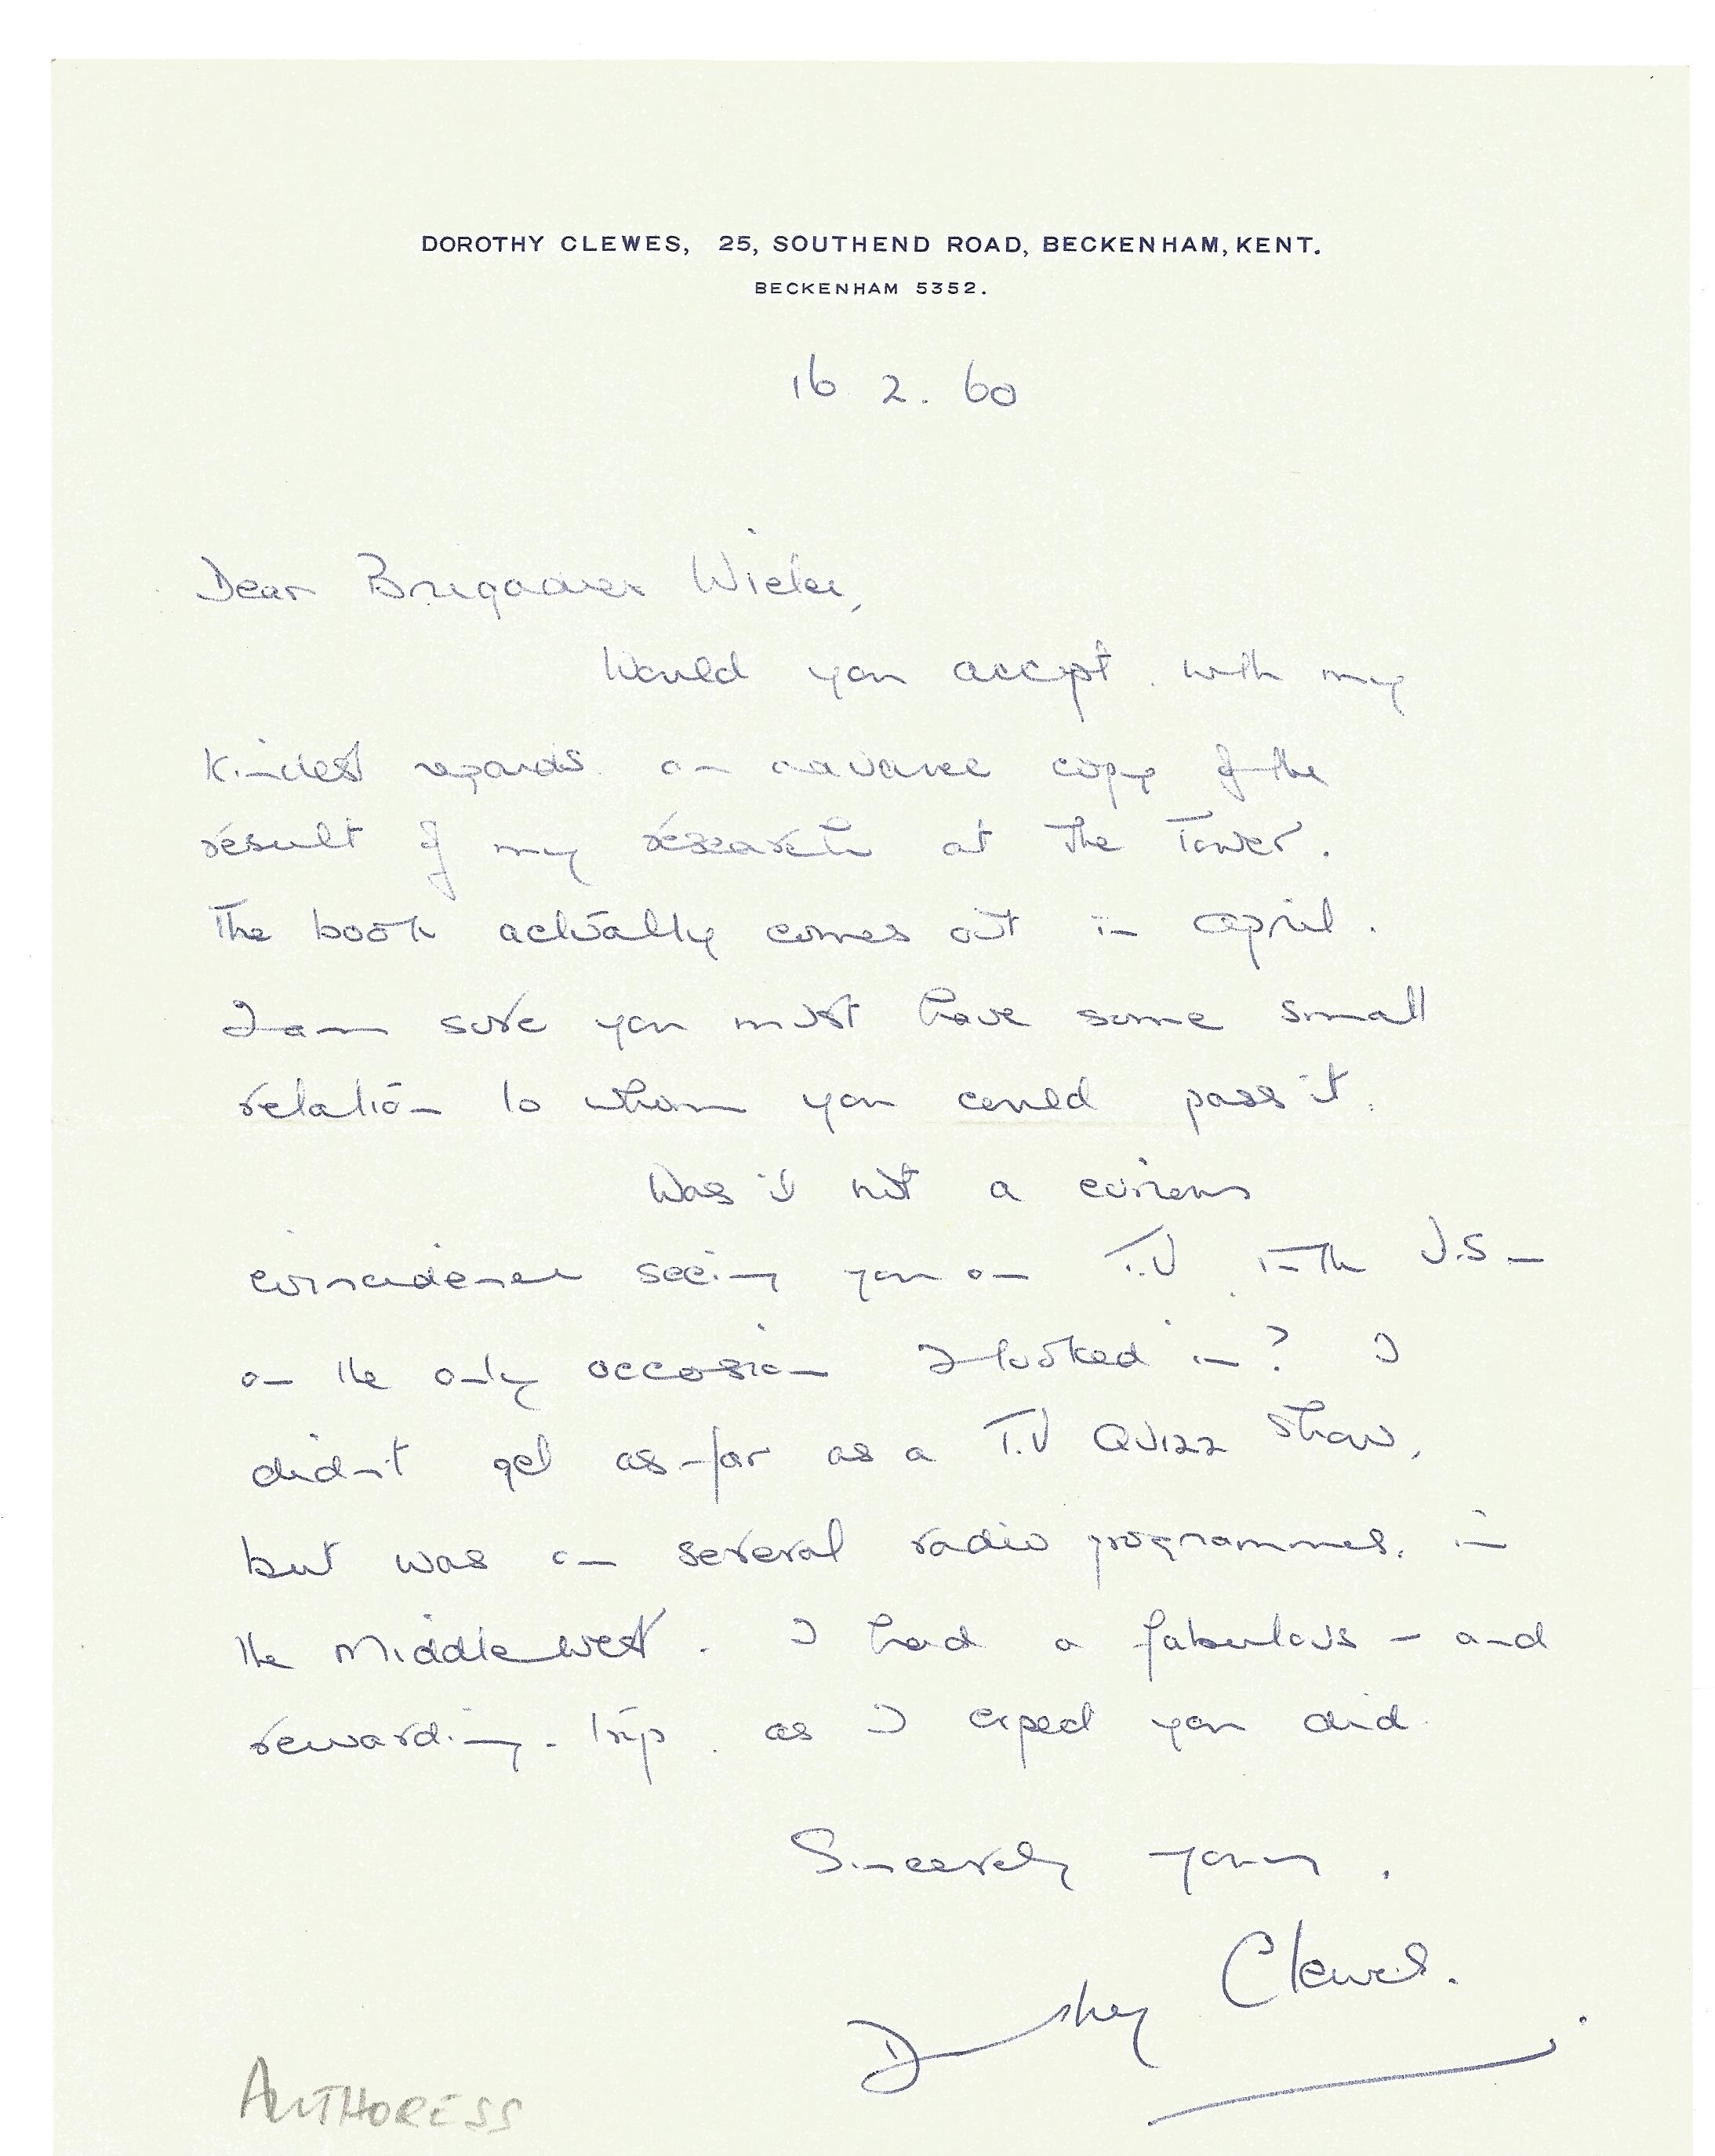 Dorothy Clewes 7 x 9 ALS dated 16th February 1960. Letter is to Brigadier Wieler then Governor of